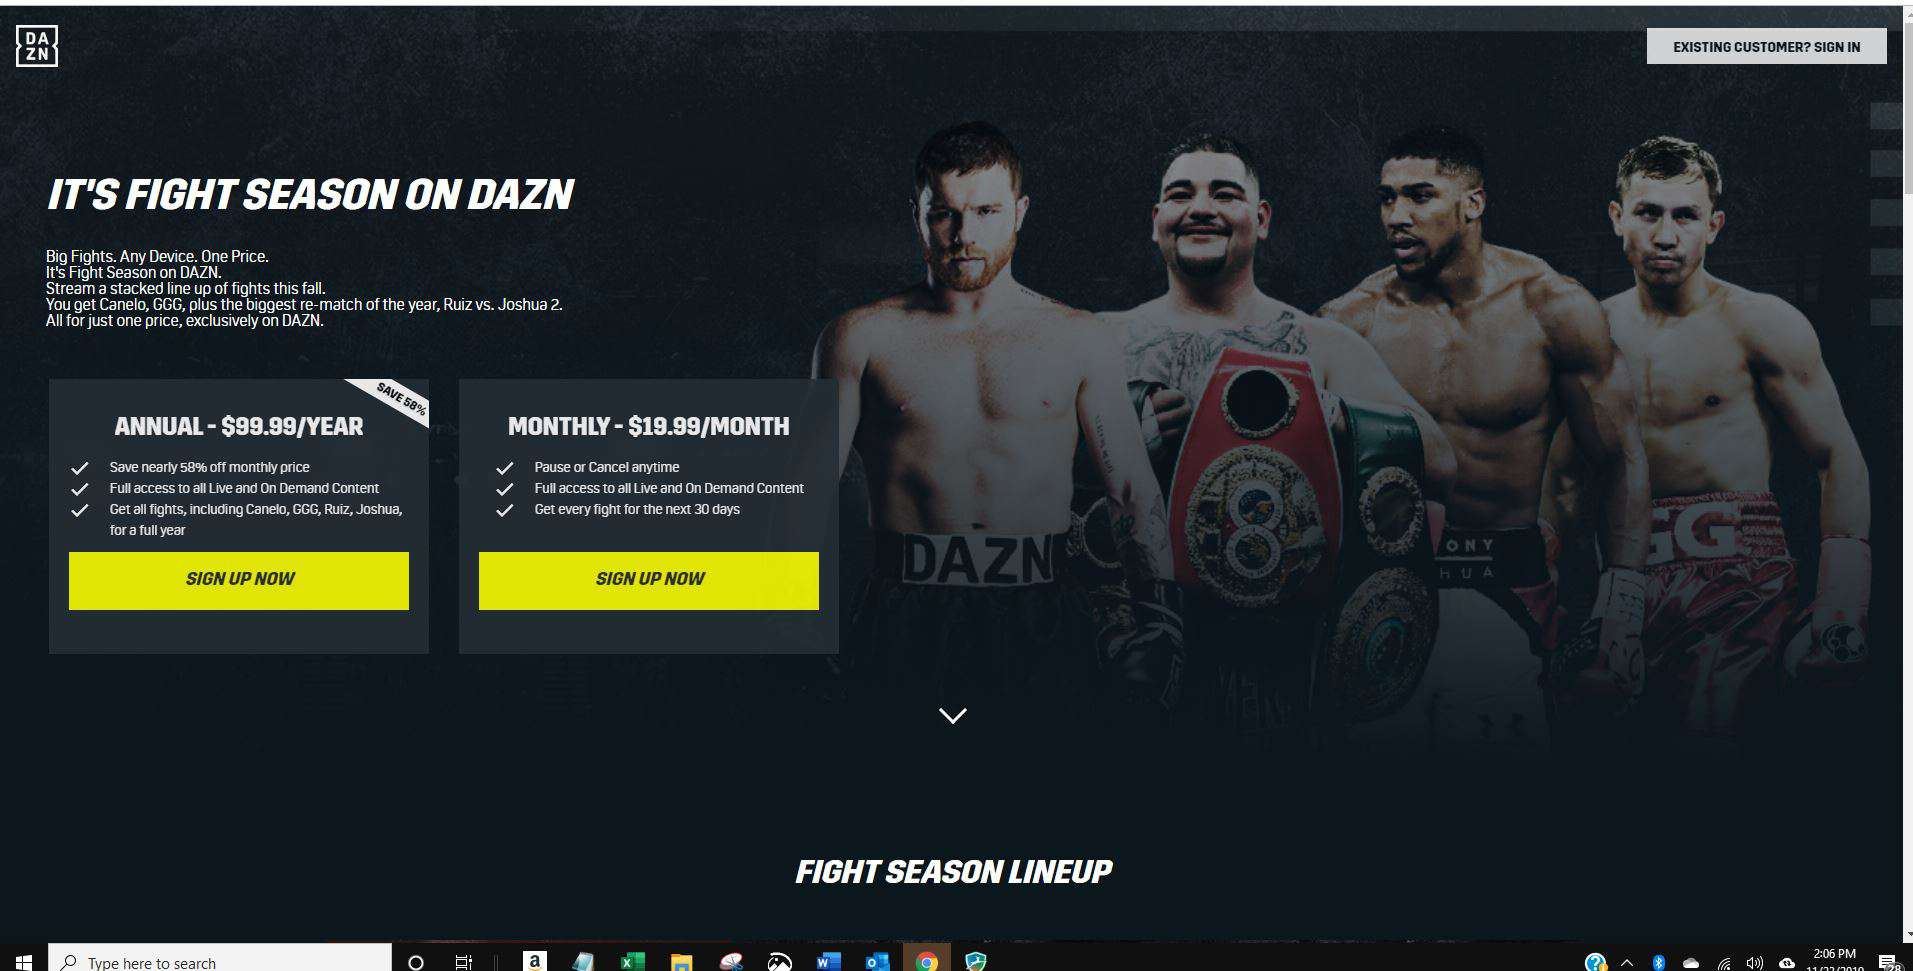 Screenshot of Sign Up Now button on DAZN website